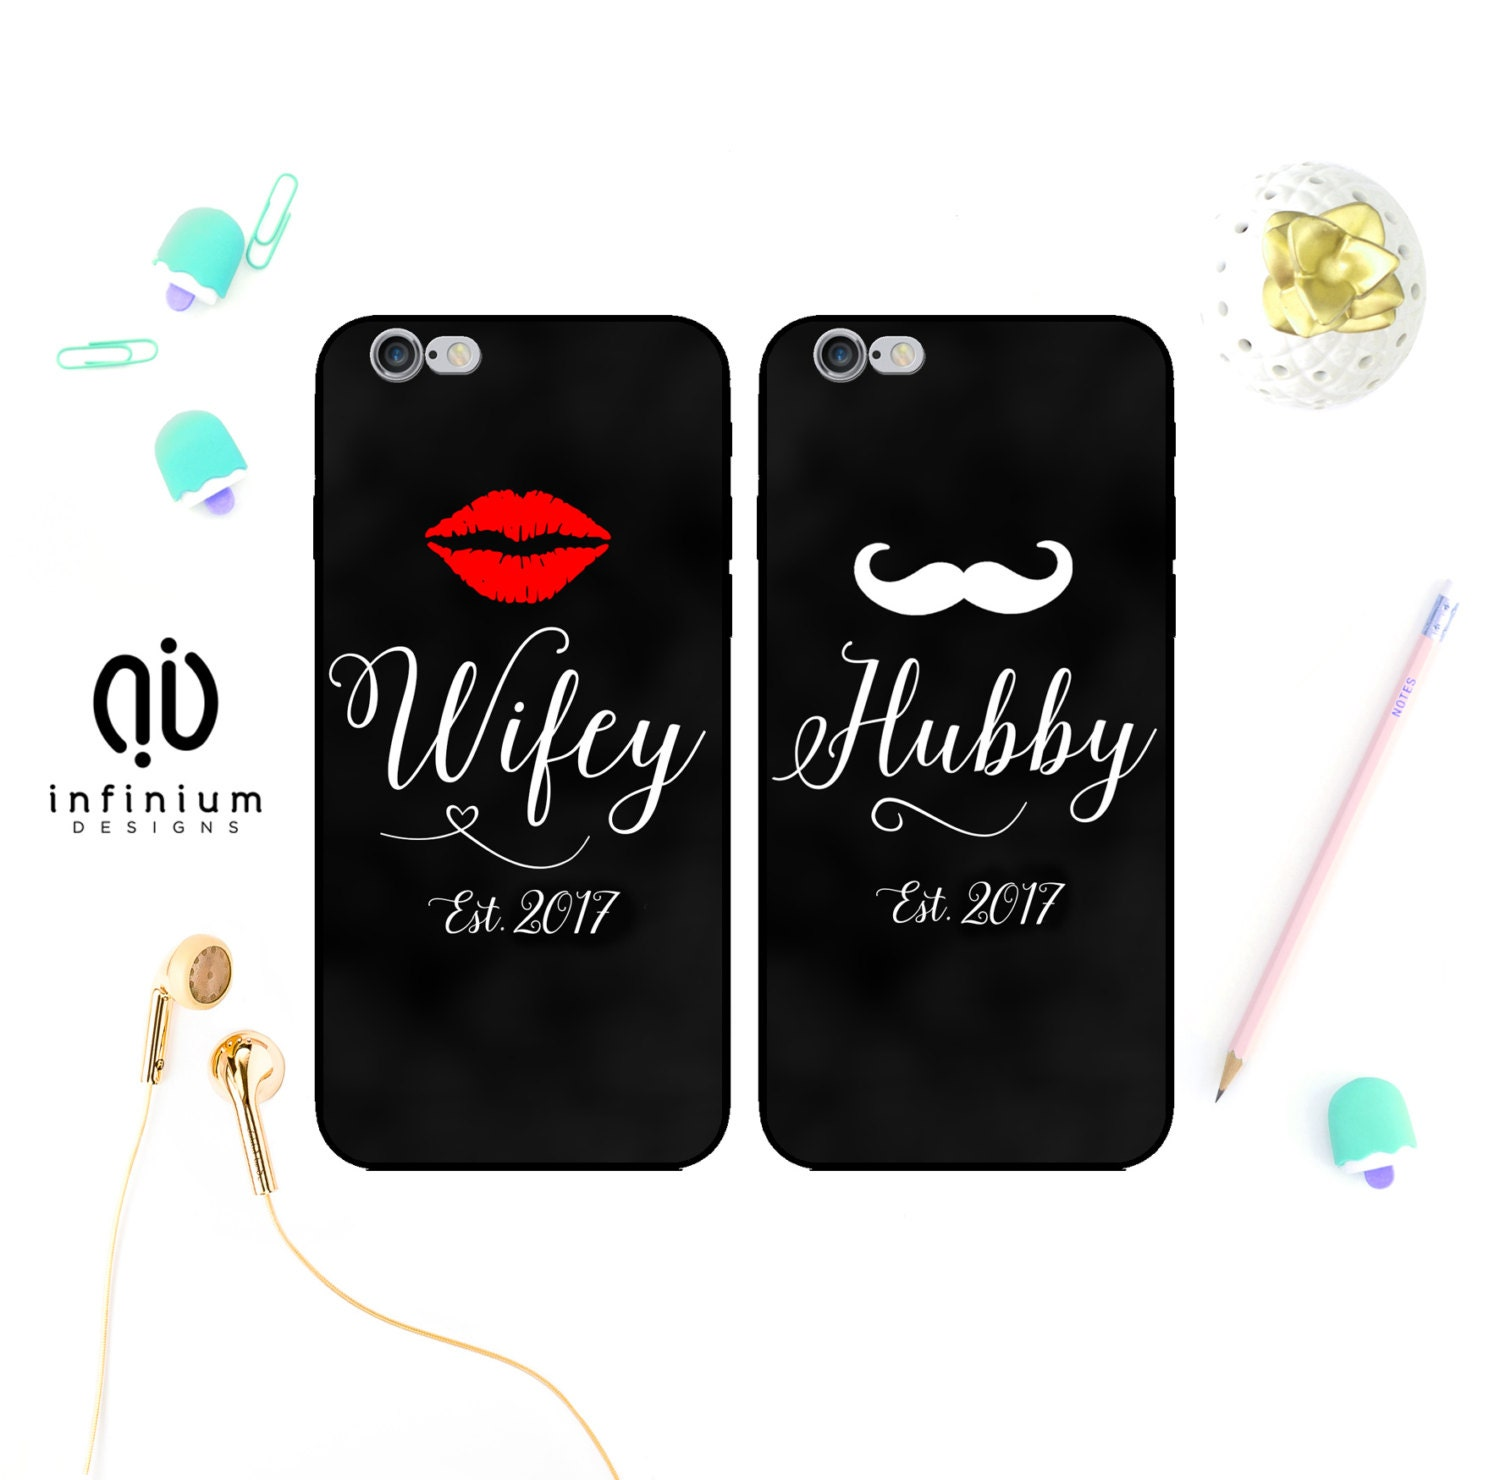 Wifey Hubby Case For iPhone 7 Samsung S7 S7 Edge S6 Samsung A5 Galaxy A3 J5 J3 Core Prime 7 Plus iPhone 6S SE 5S  Touch 6